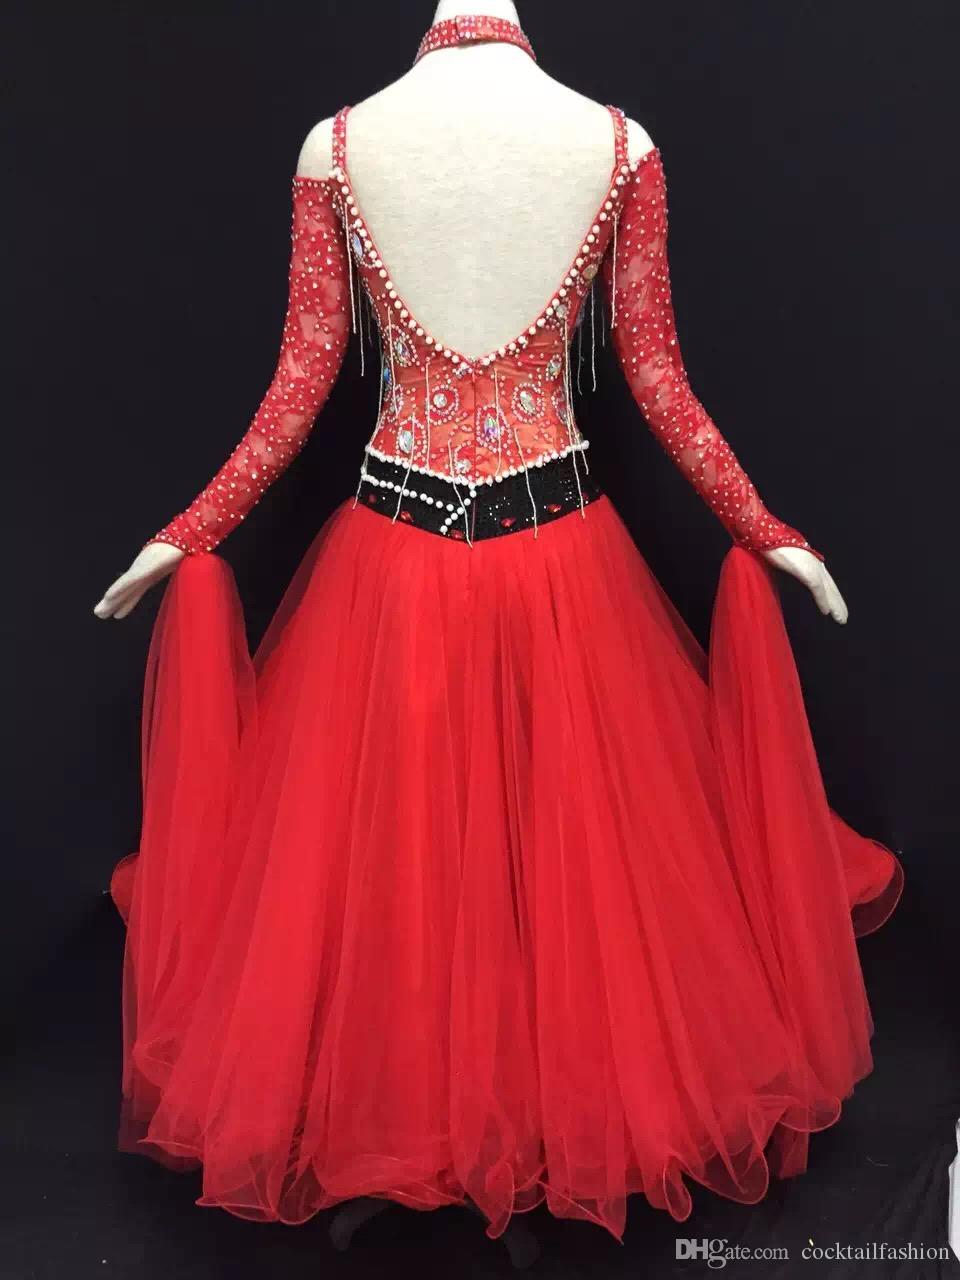 Red Dance Dresses